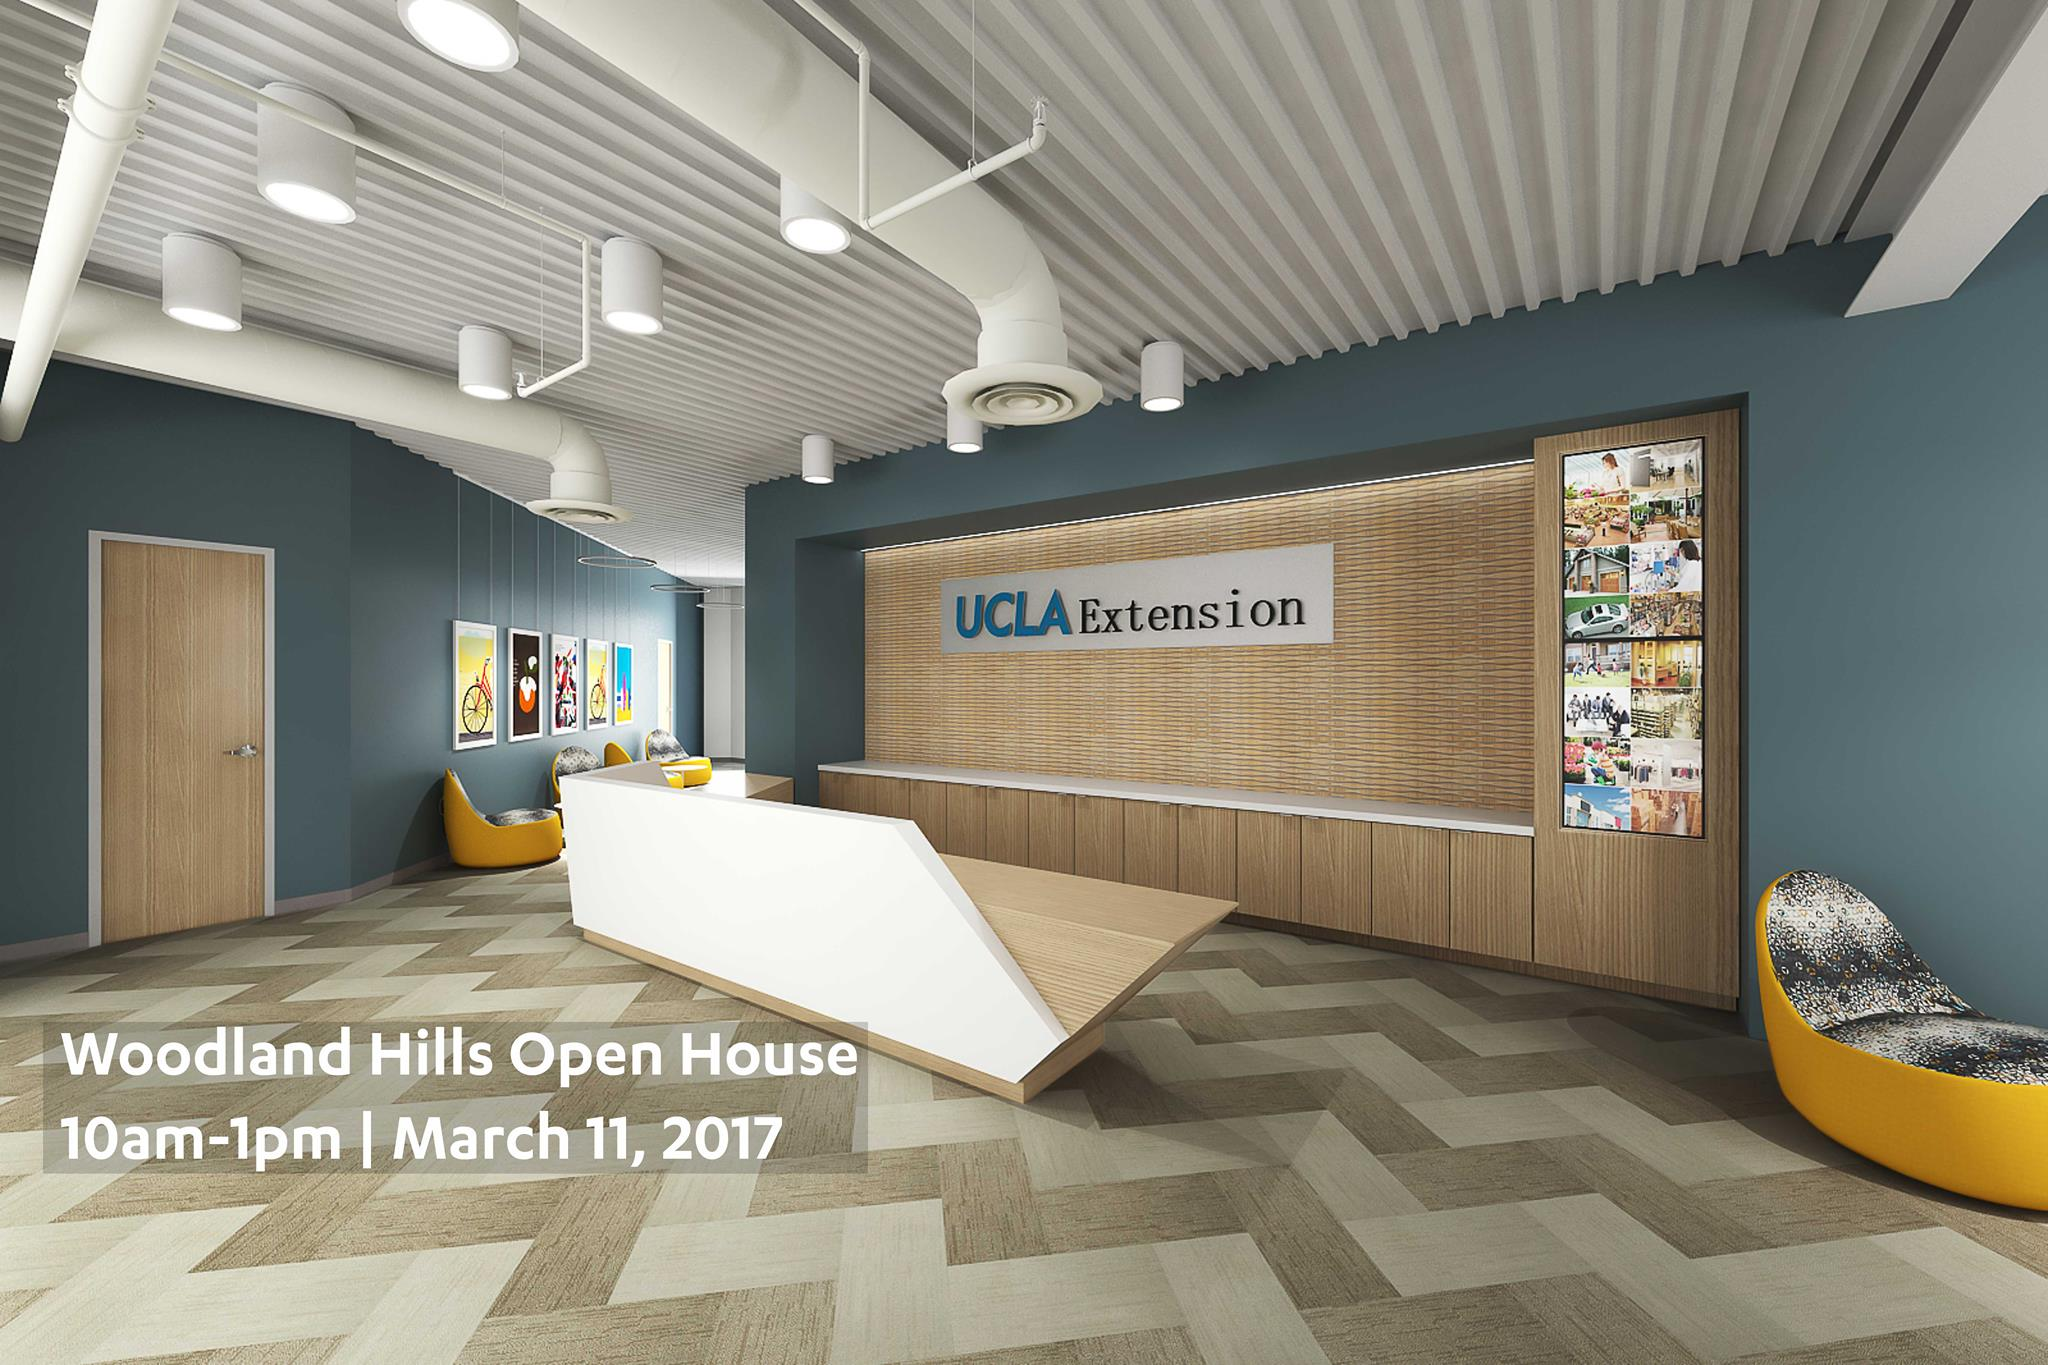 UCLA Extension Woodland Hills Grand Opening and Reception